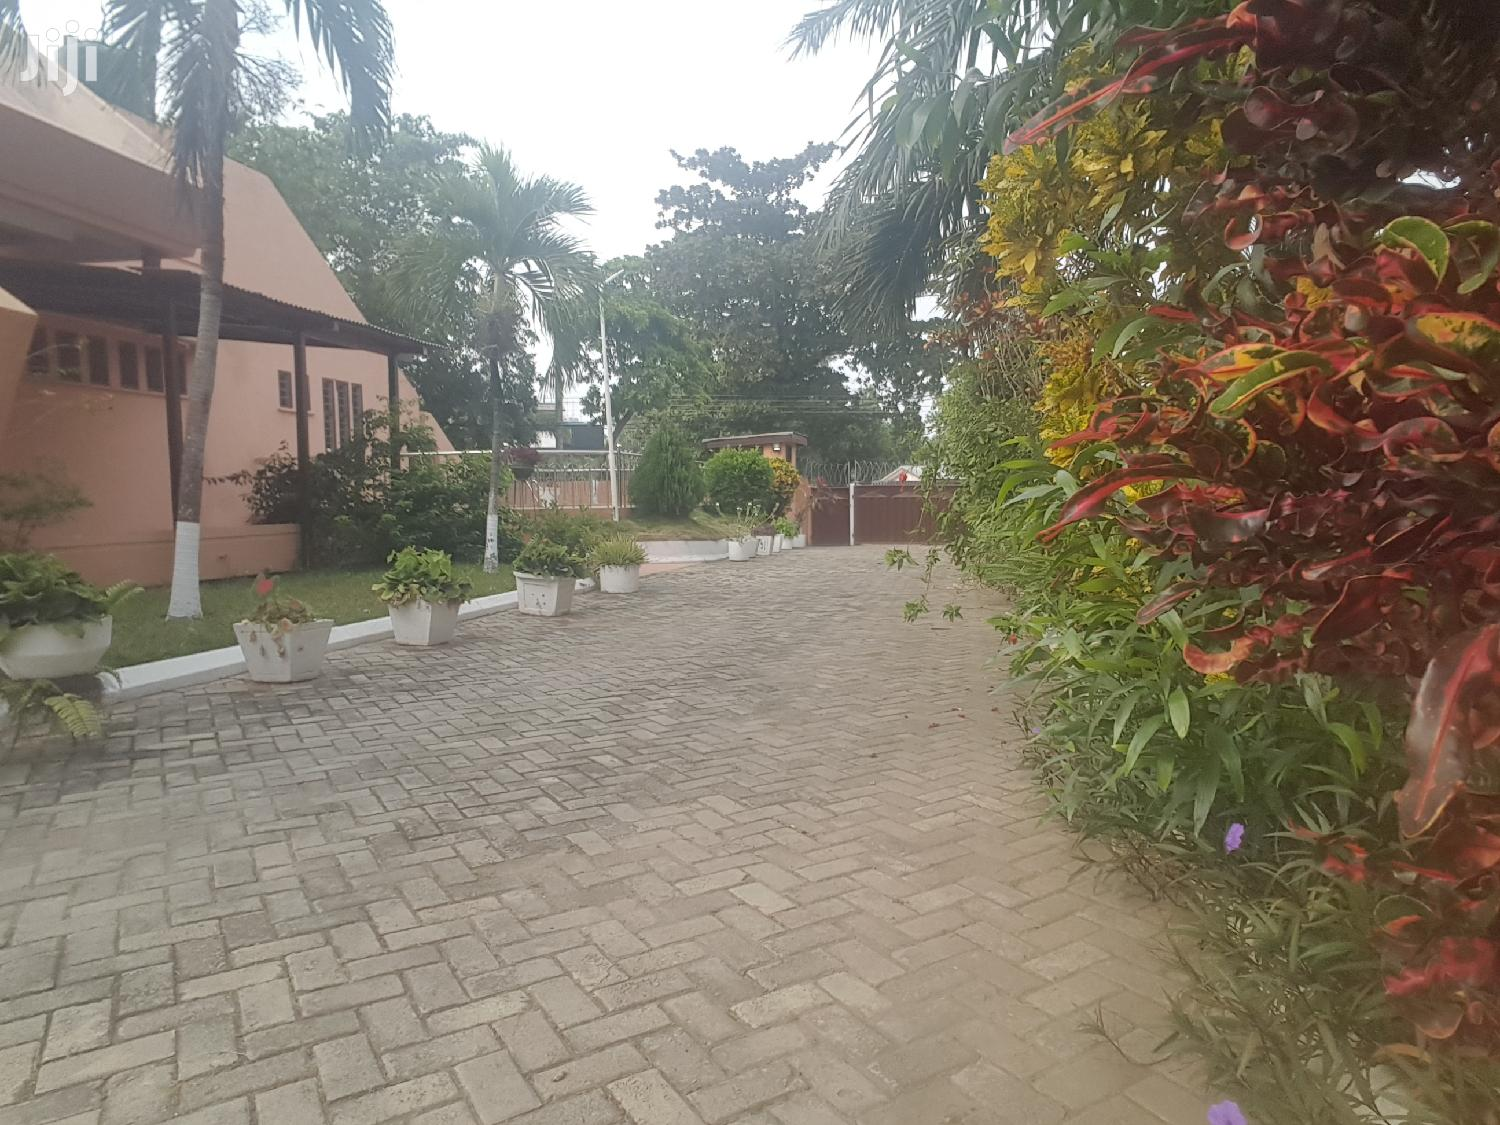 4 Bedroom House For Rent At North Ridge | Houses & Apartments For Rent for sale in Accra Metropolitan, Greater Accra, Ghana